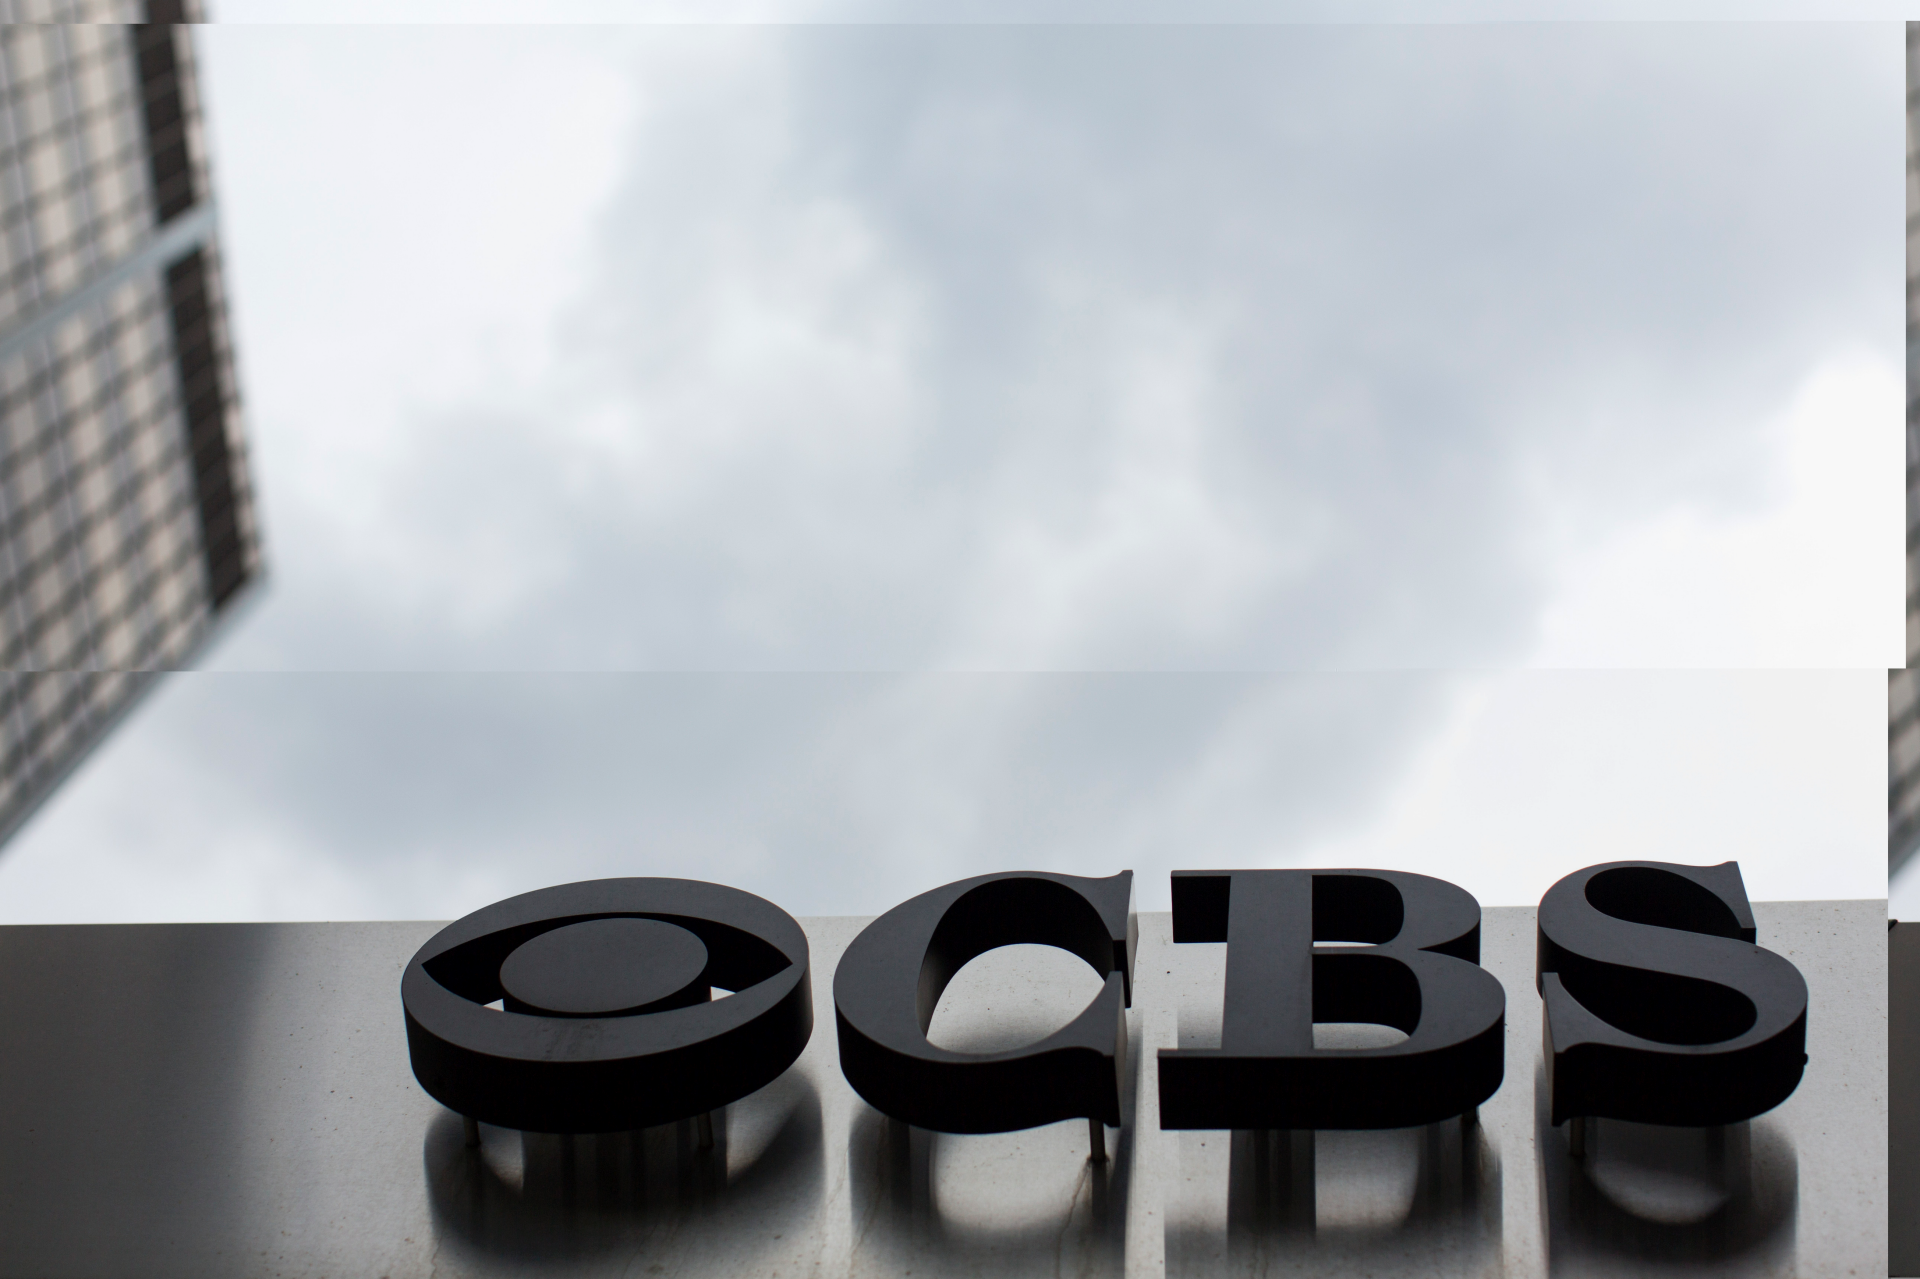 Manager of CBS employees' credit union stole $40M over 20 years, authorities say | Fox News